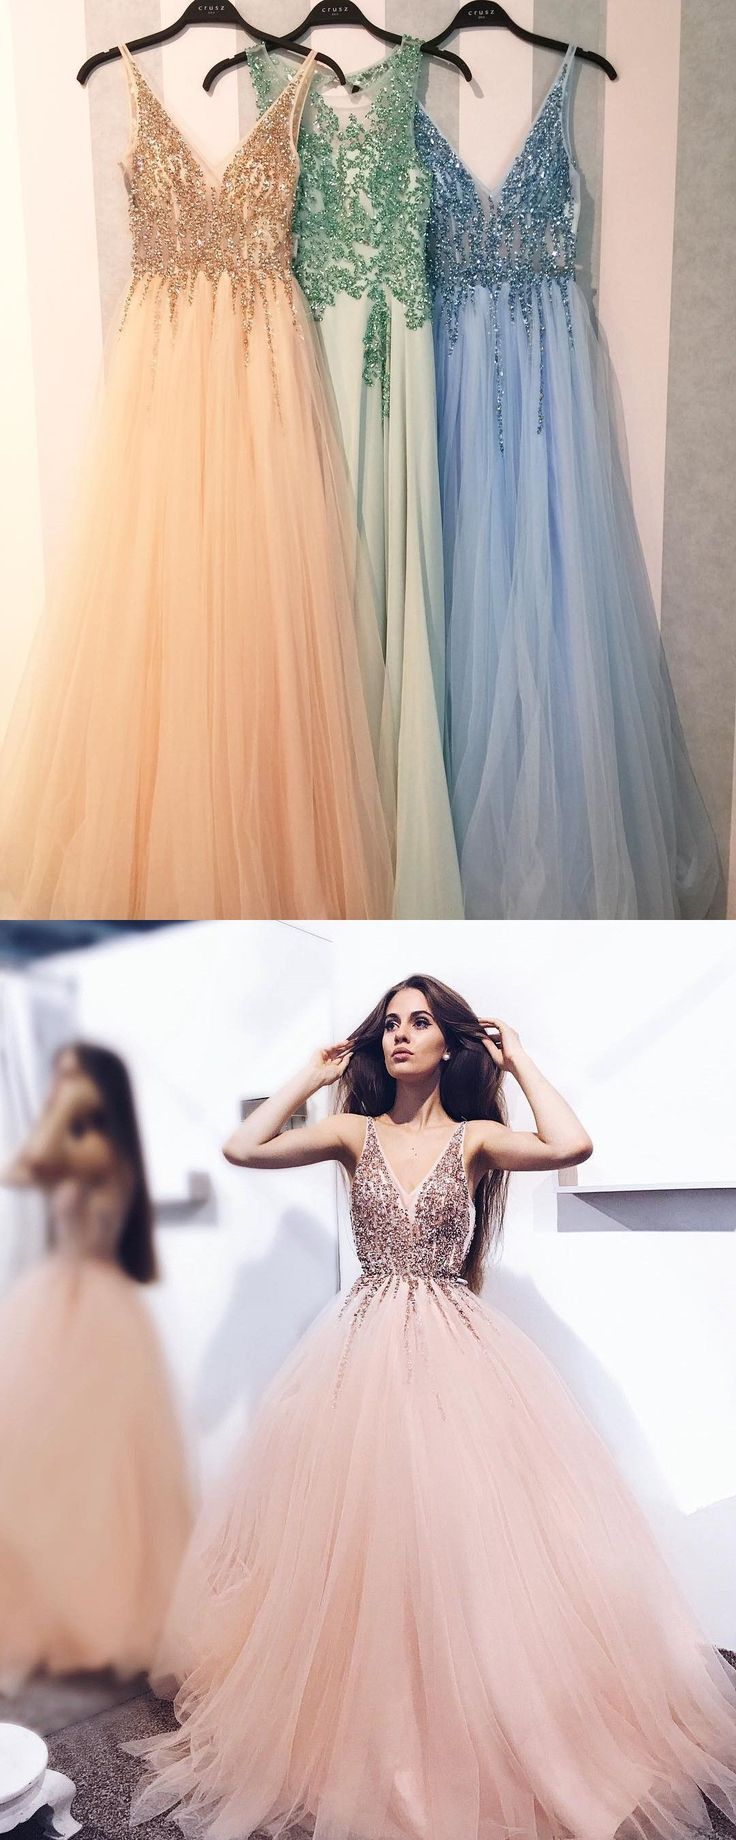 Outlet Substantial Prom Dresses 2019 Luxurious Beads V Neck Pink Long Prom Dress